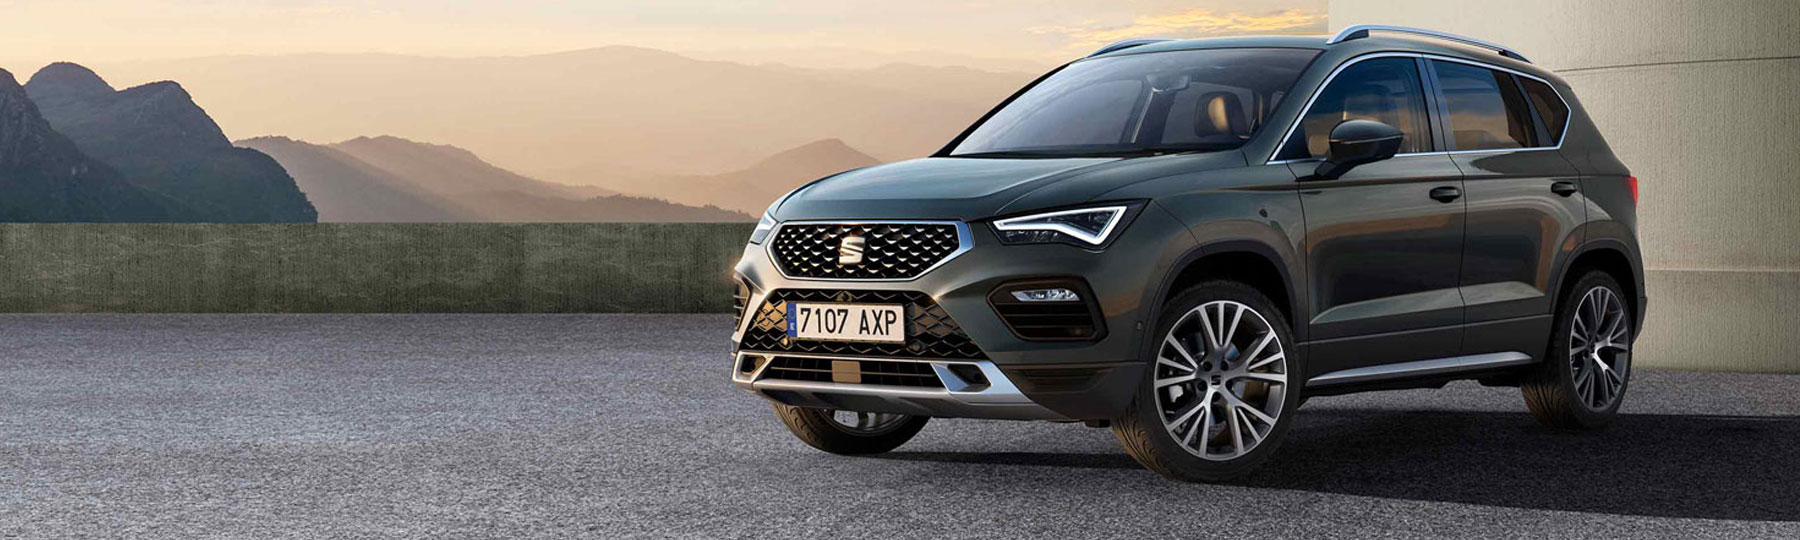 New SEAT Ateca Business Offer